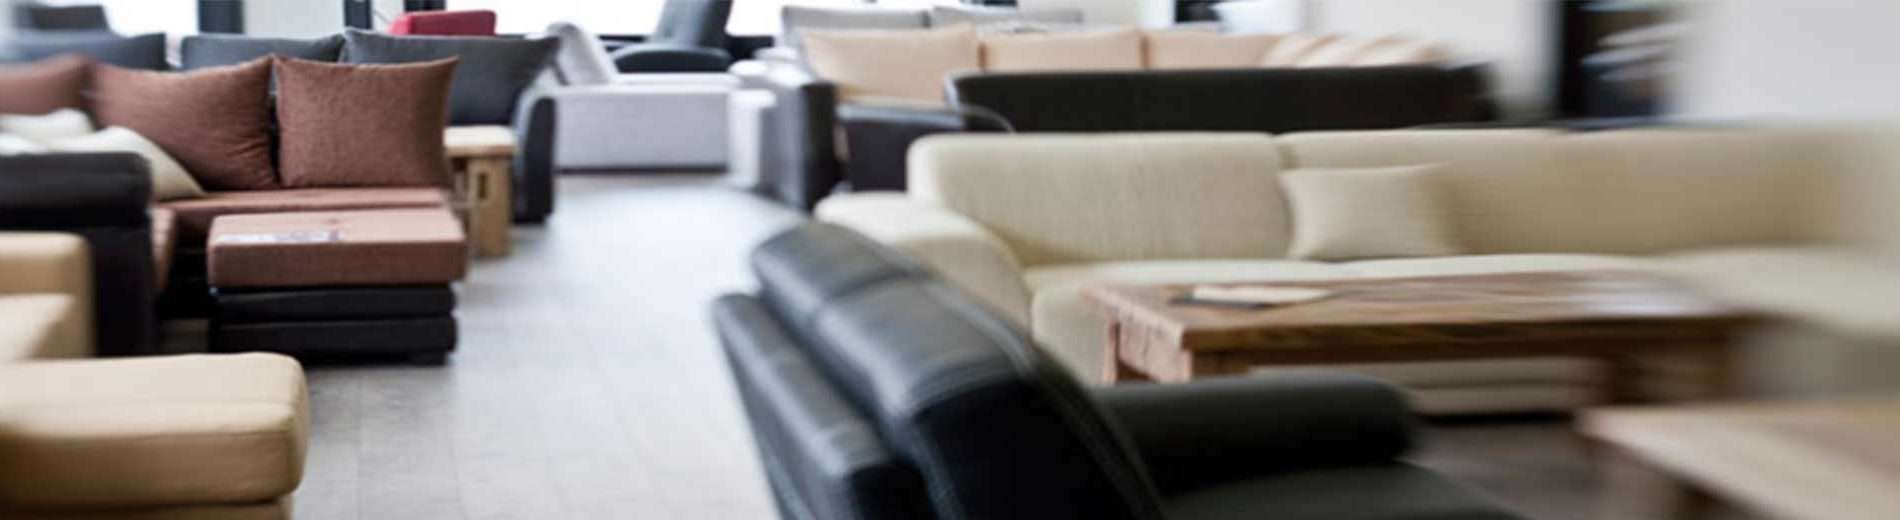 Tapos-Furniture--chairs,barchairs,armchairs,sofas5